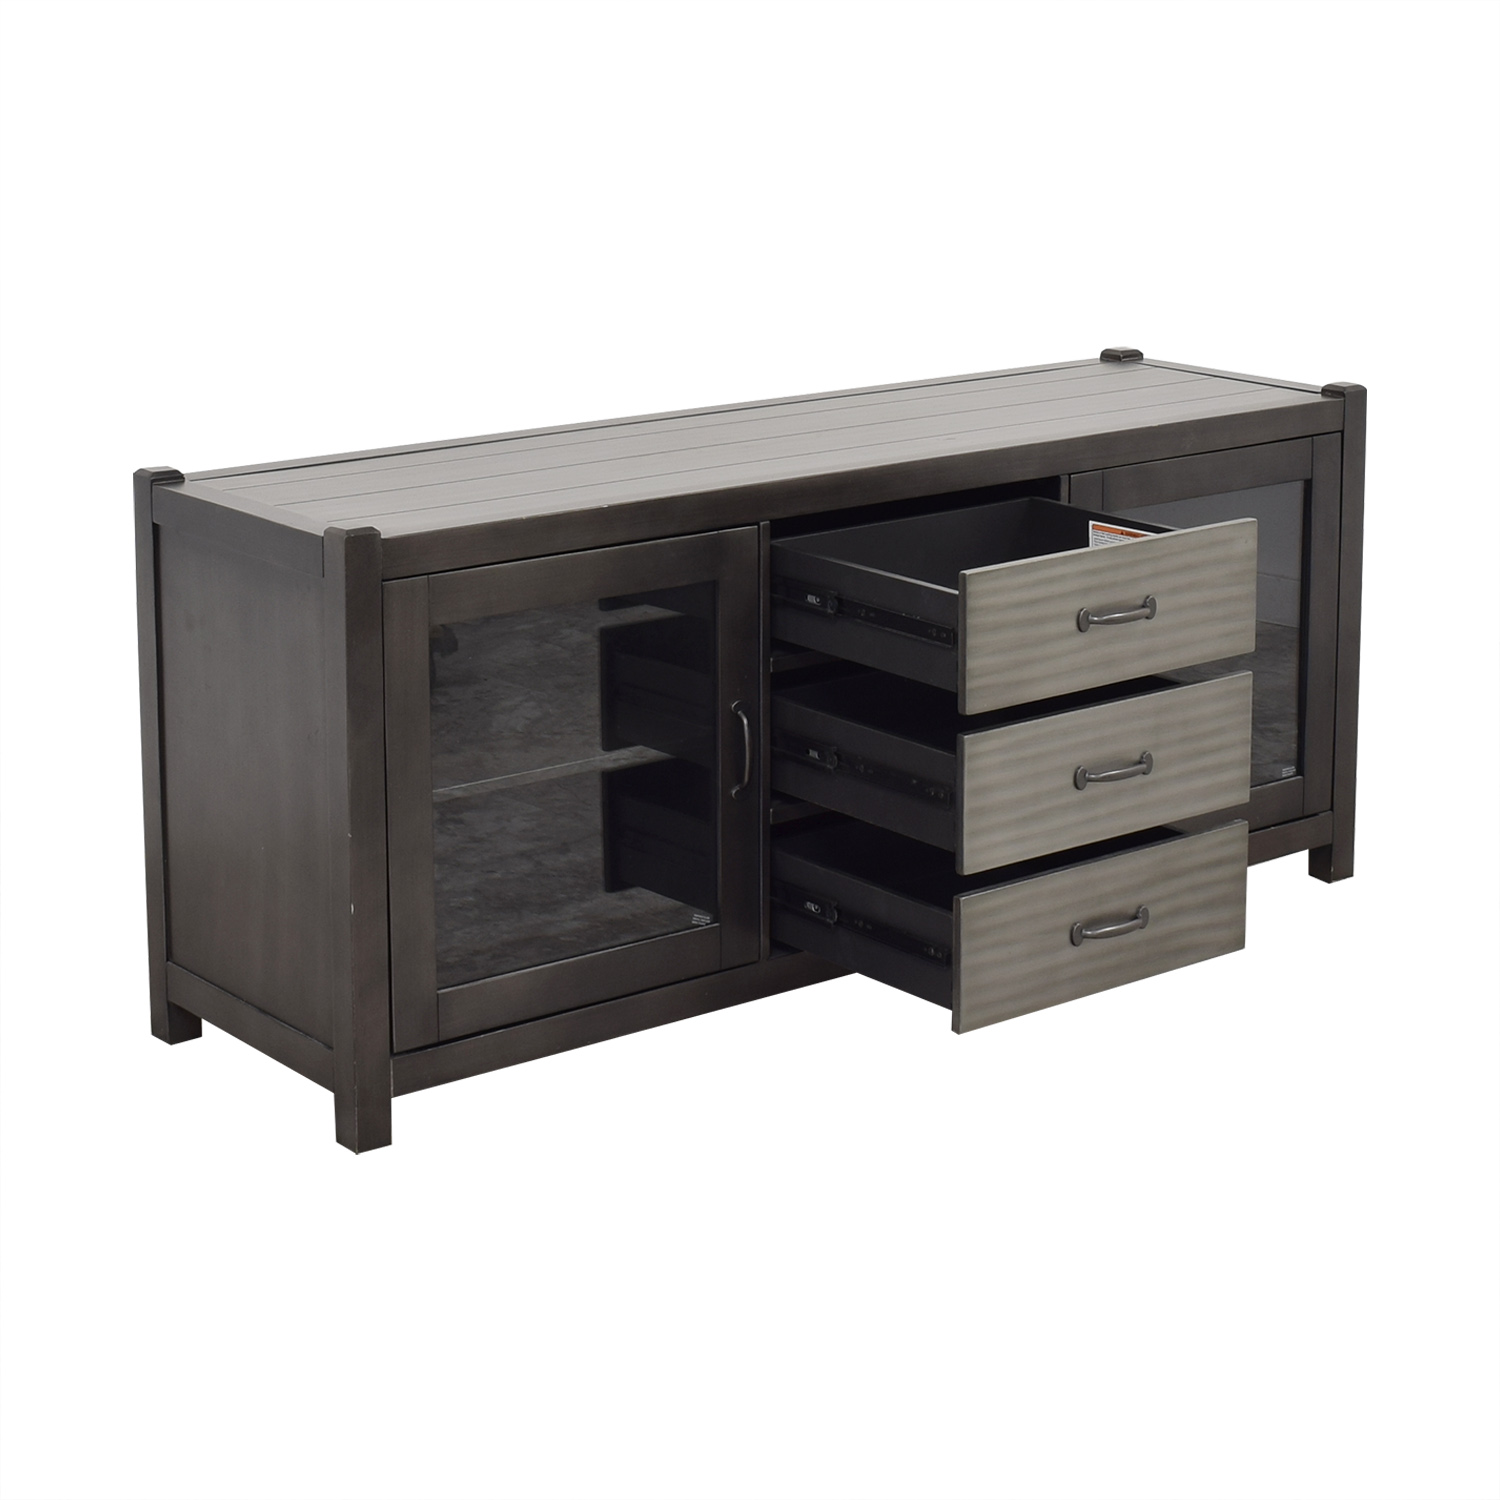 Raymour & Flanigan Raymour & Flanigan Axel TV Console coupon